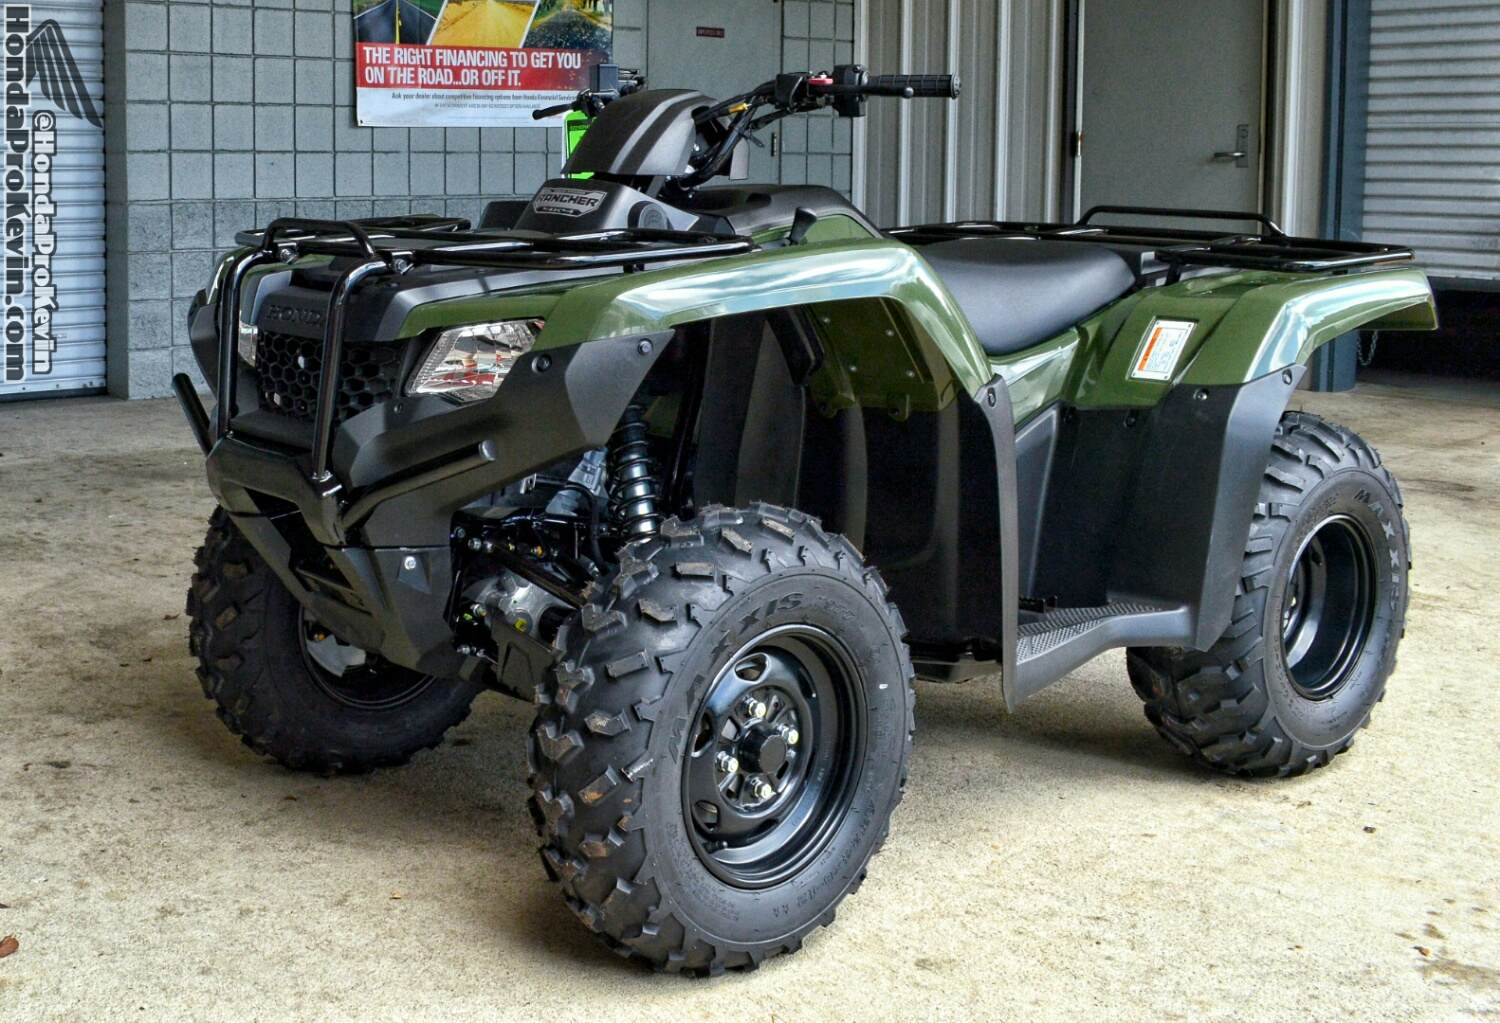 2019 Honda Rancher Es 420 Atv Review Specs Four Wheeler Er S Guide